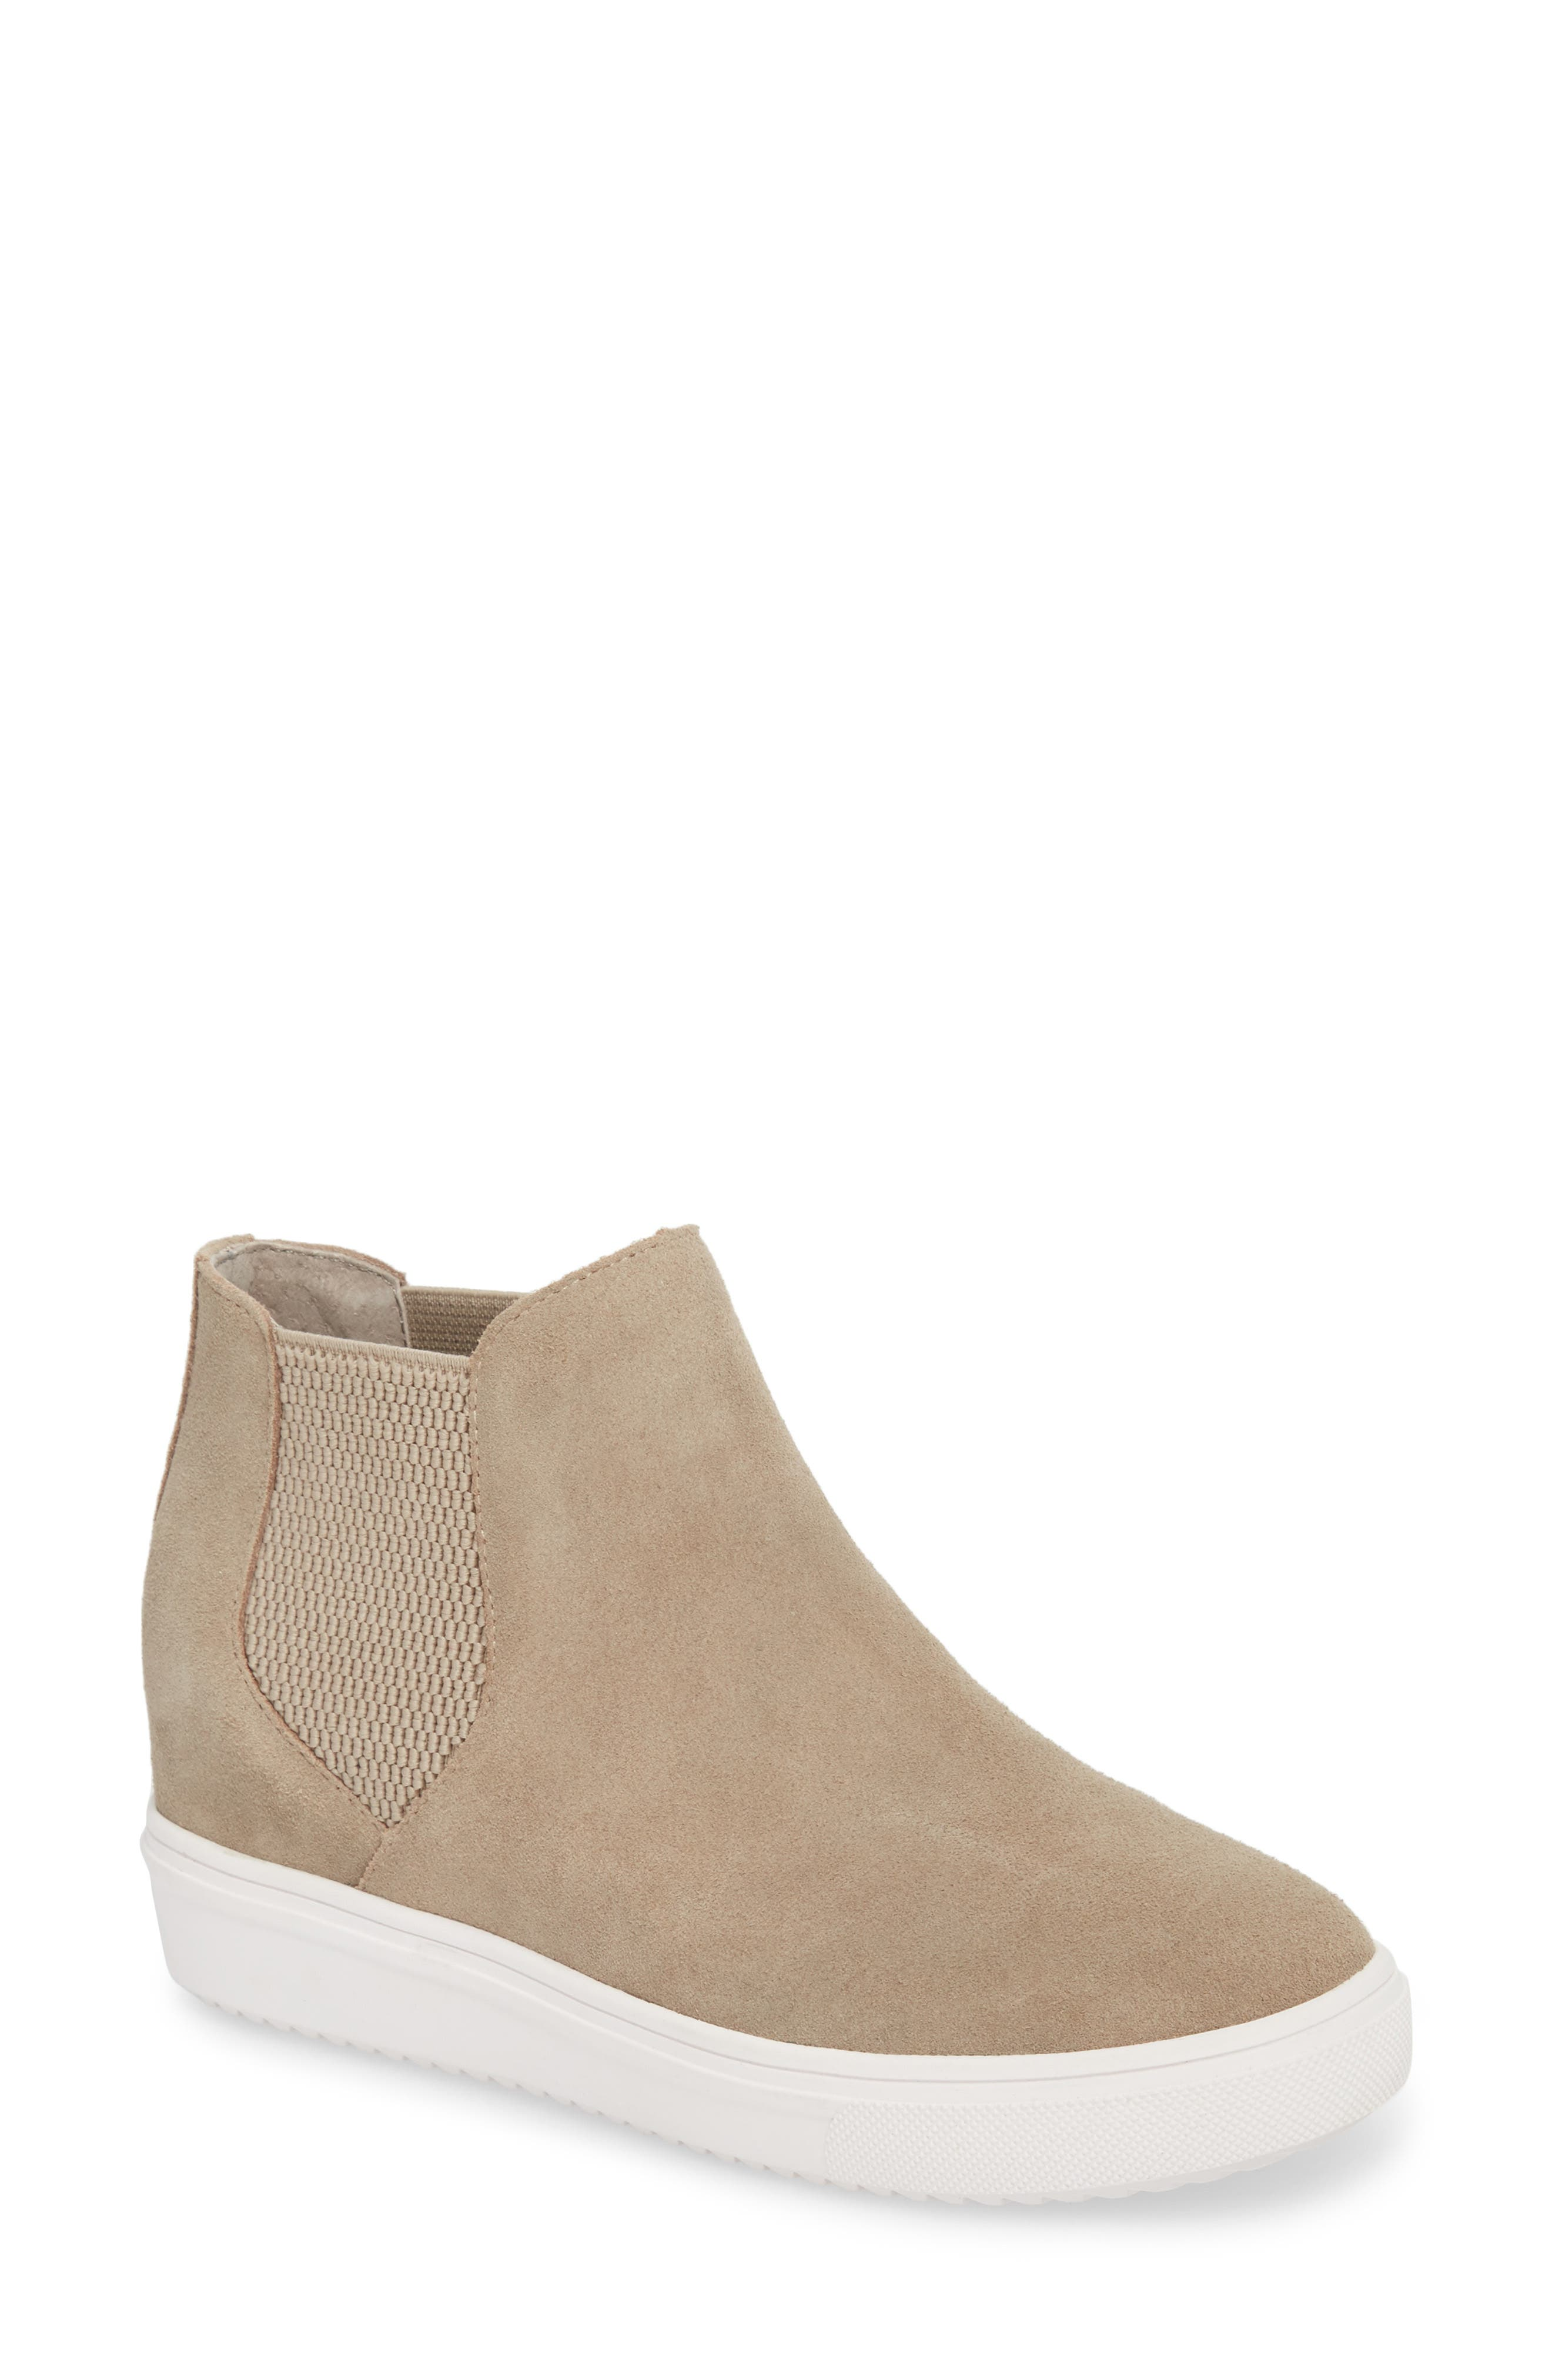 Sultan Chelsea Wedge Sneaker,                             Main thumbnail 1, color,                             TAUPE SUEDE